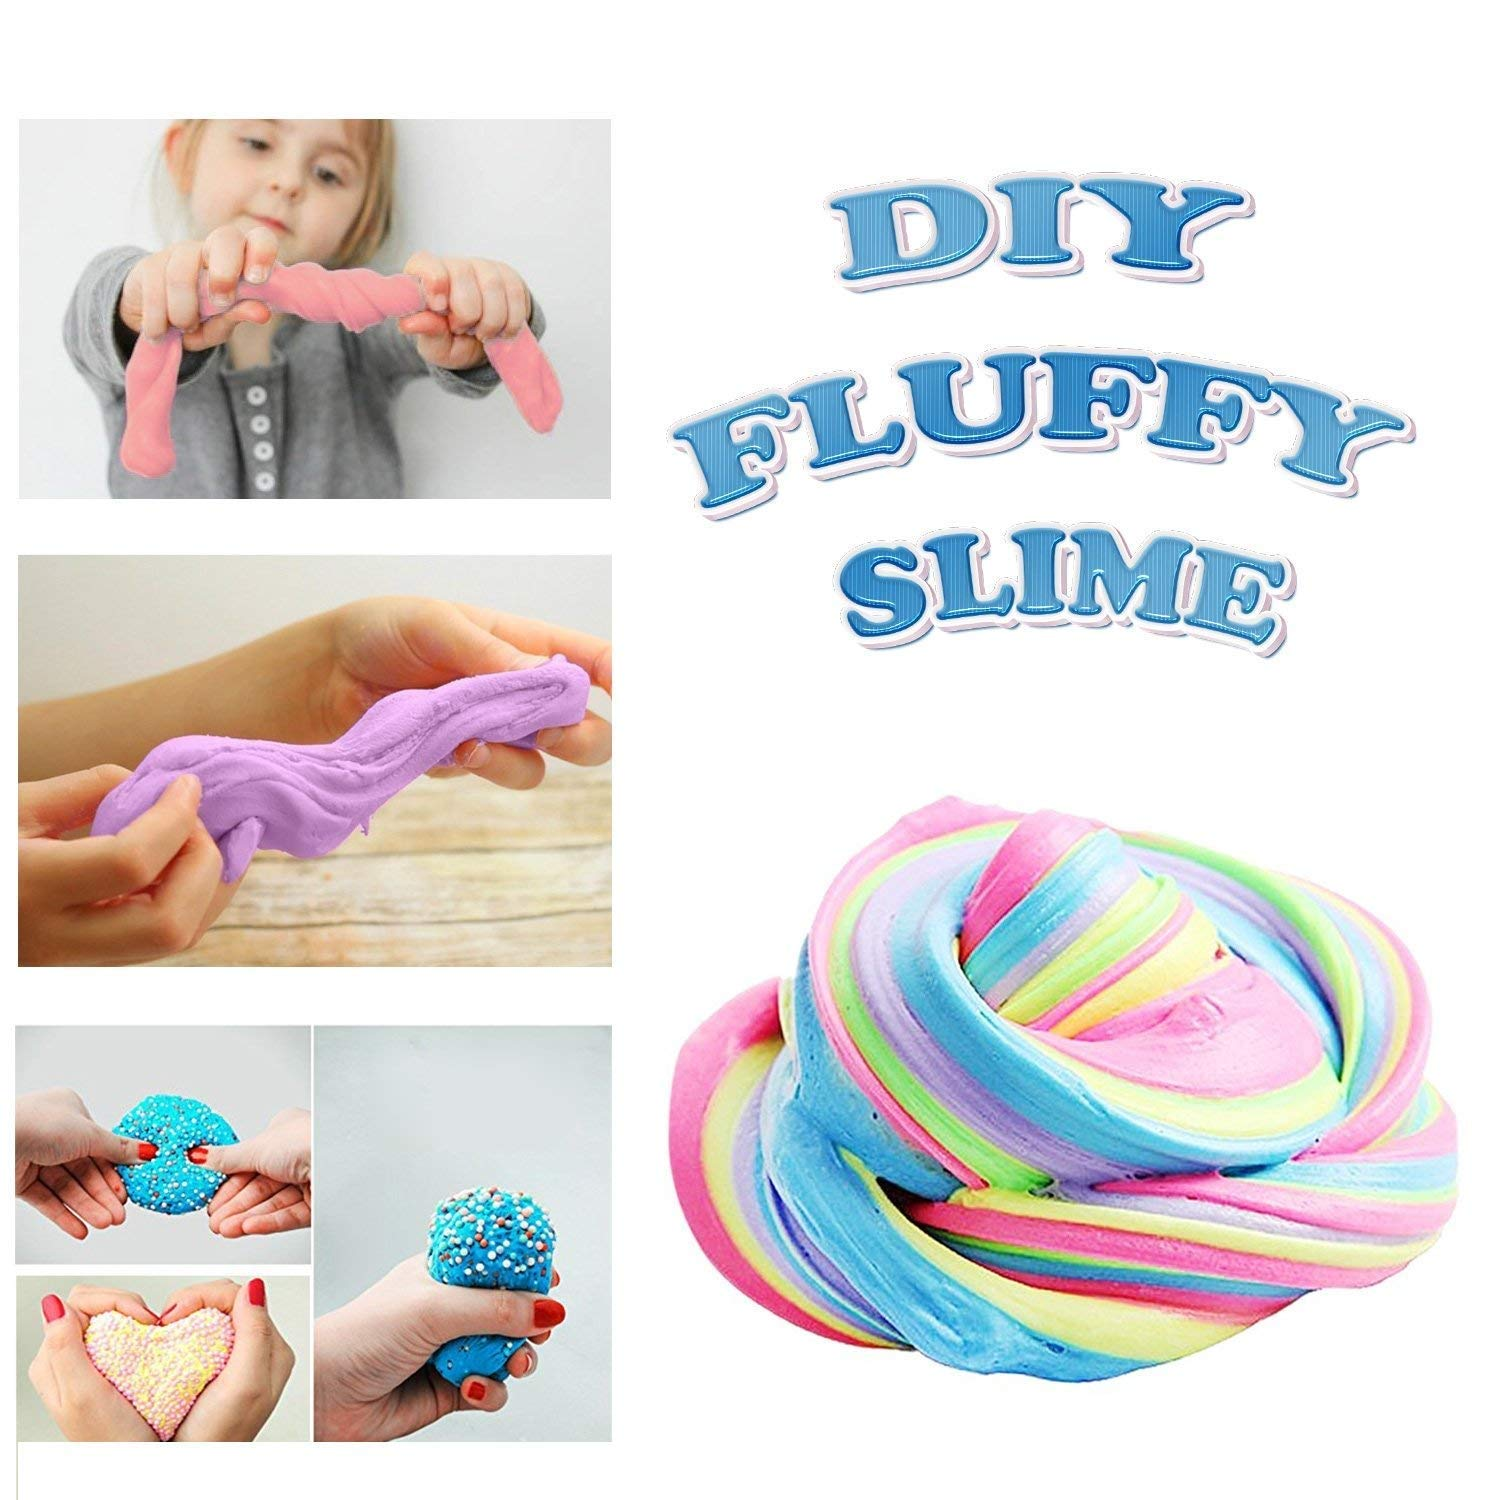 Huibudch Rainbow Slime Fluffy Slime Floam 10 OZ Slime 4 Colors Jumbo Slime Stress Relief Toy Keep Your hands Busy With 4 Colors 10 OZ( Blue Pink Green Purple)